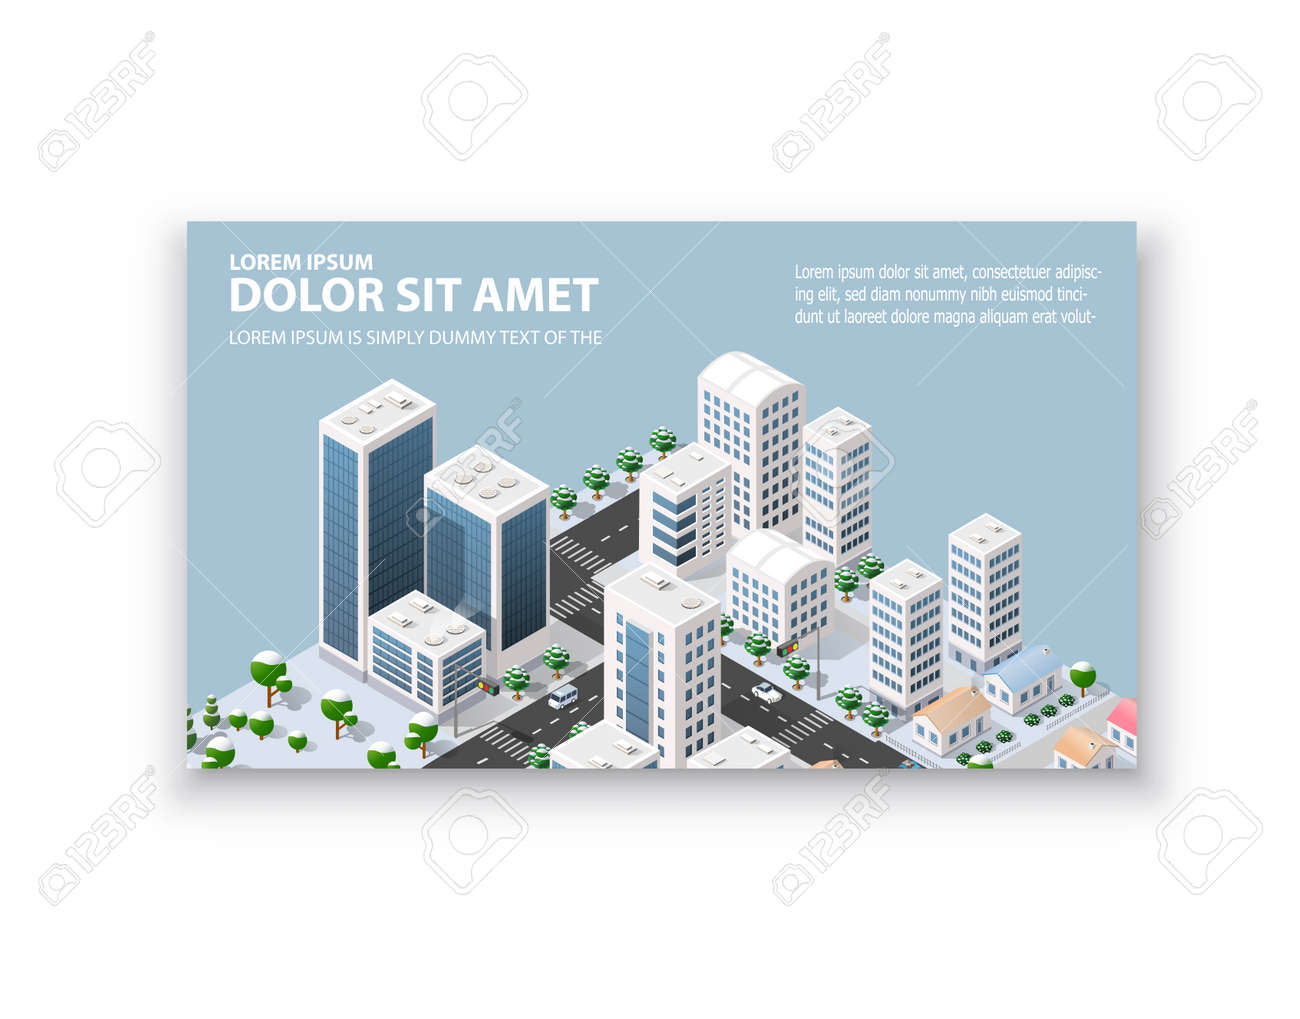 Business card template for real estate agencies construction business card template for real estate agencies construction companies and businesses tourist and fbccfo Gallery